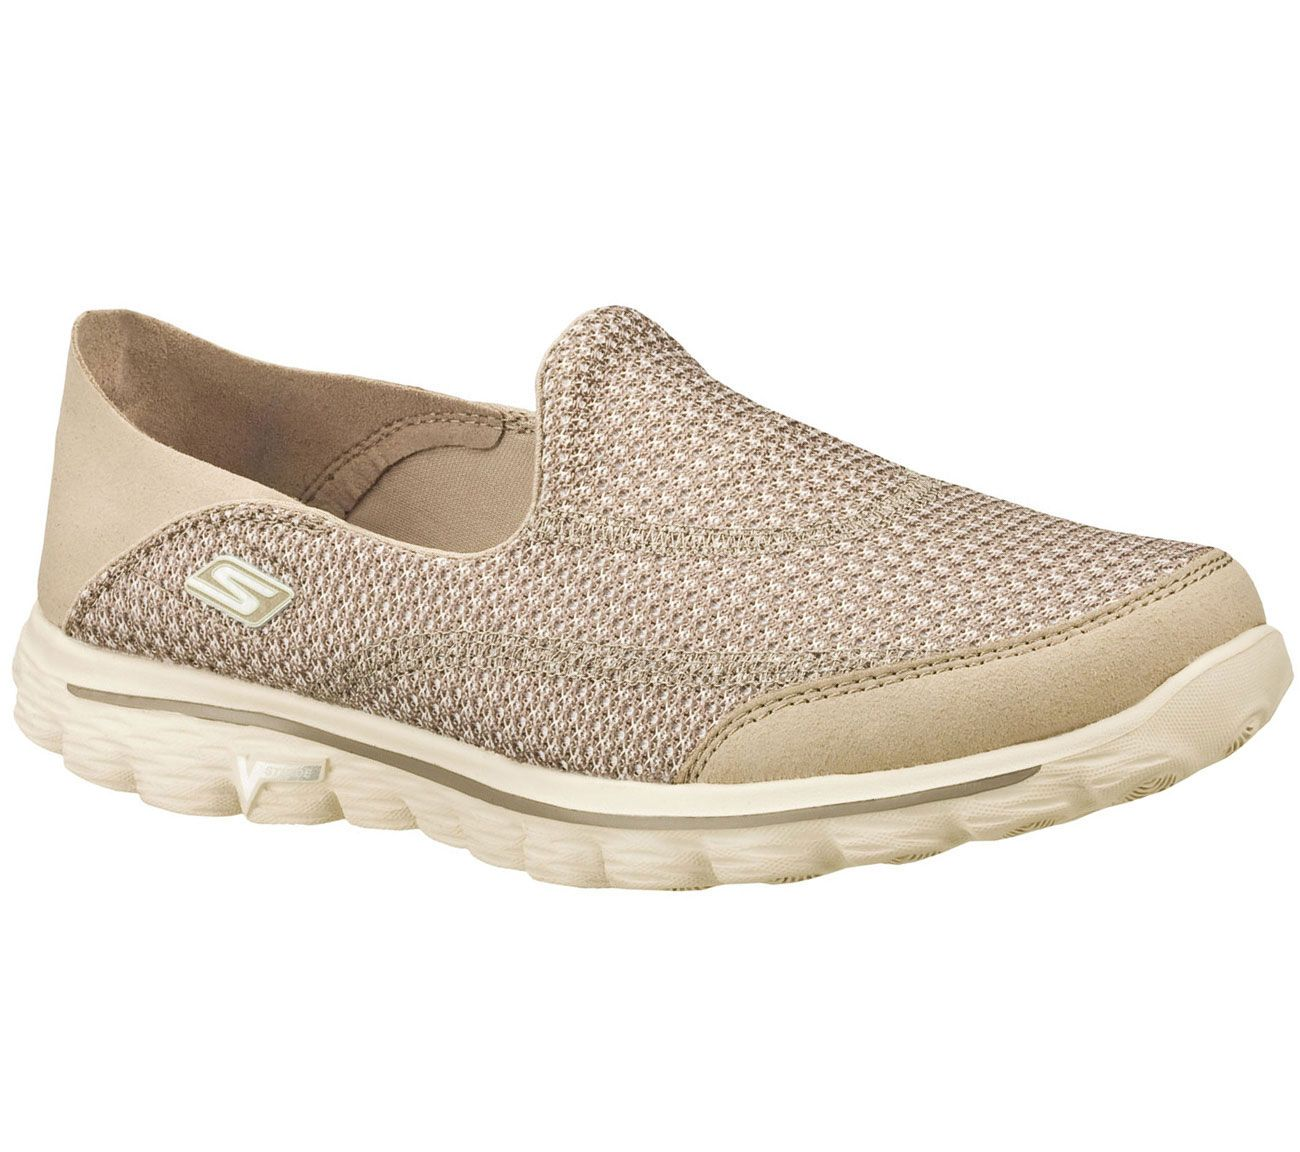 skechers go walk 2 mens mesh slip on shoes